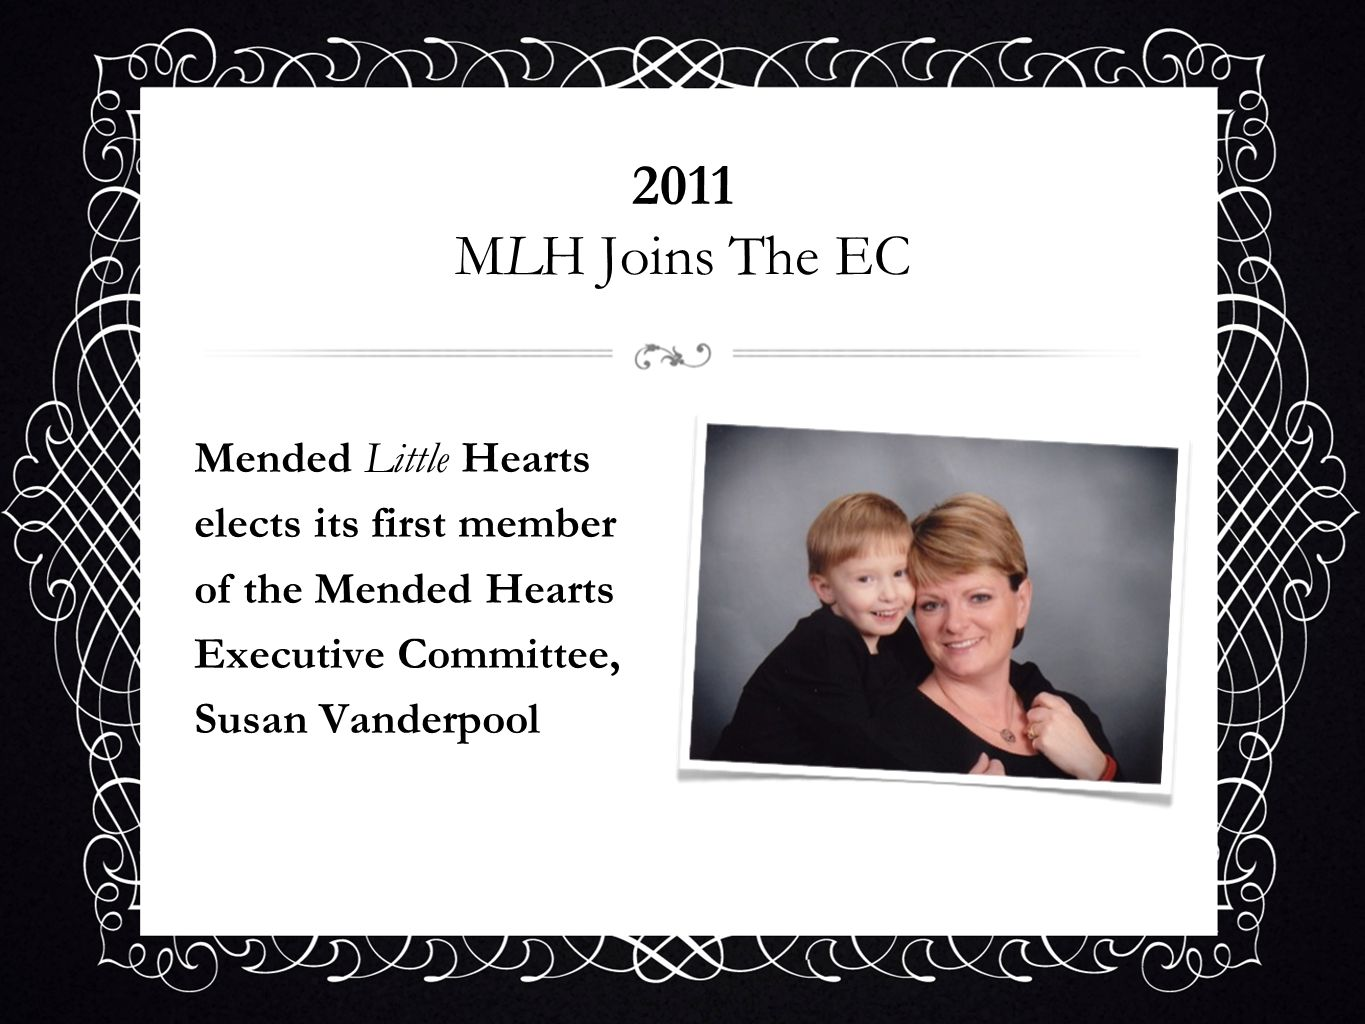 2011 MLH Joins The EC Mended Little Hearts elects its first member of the Mended Hearts Executive Committee, Susan Vanderpool.